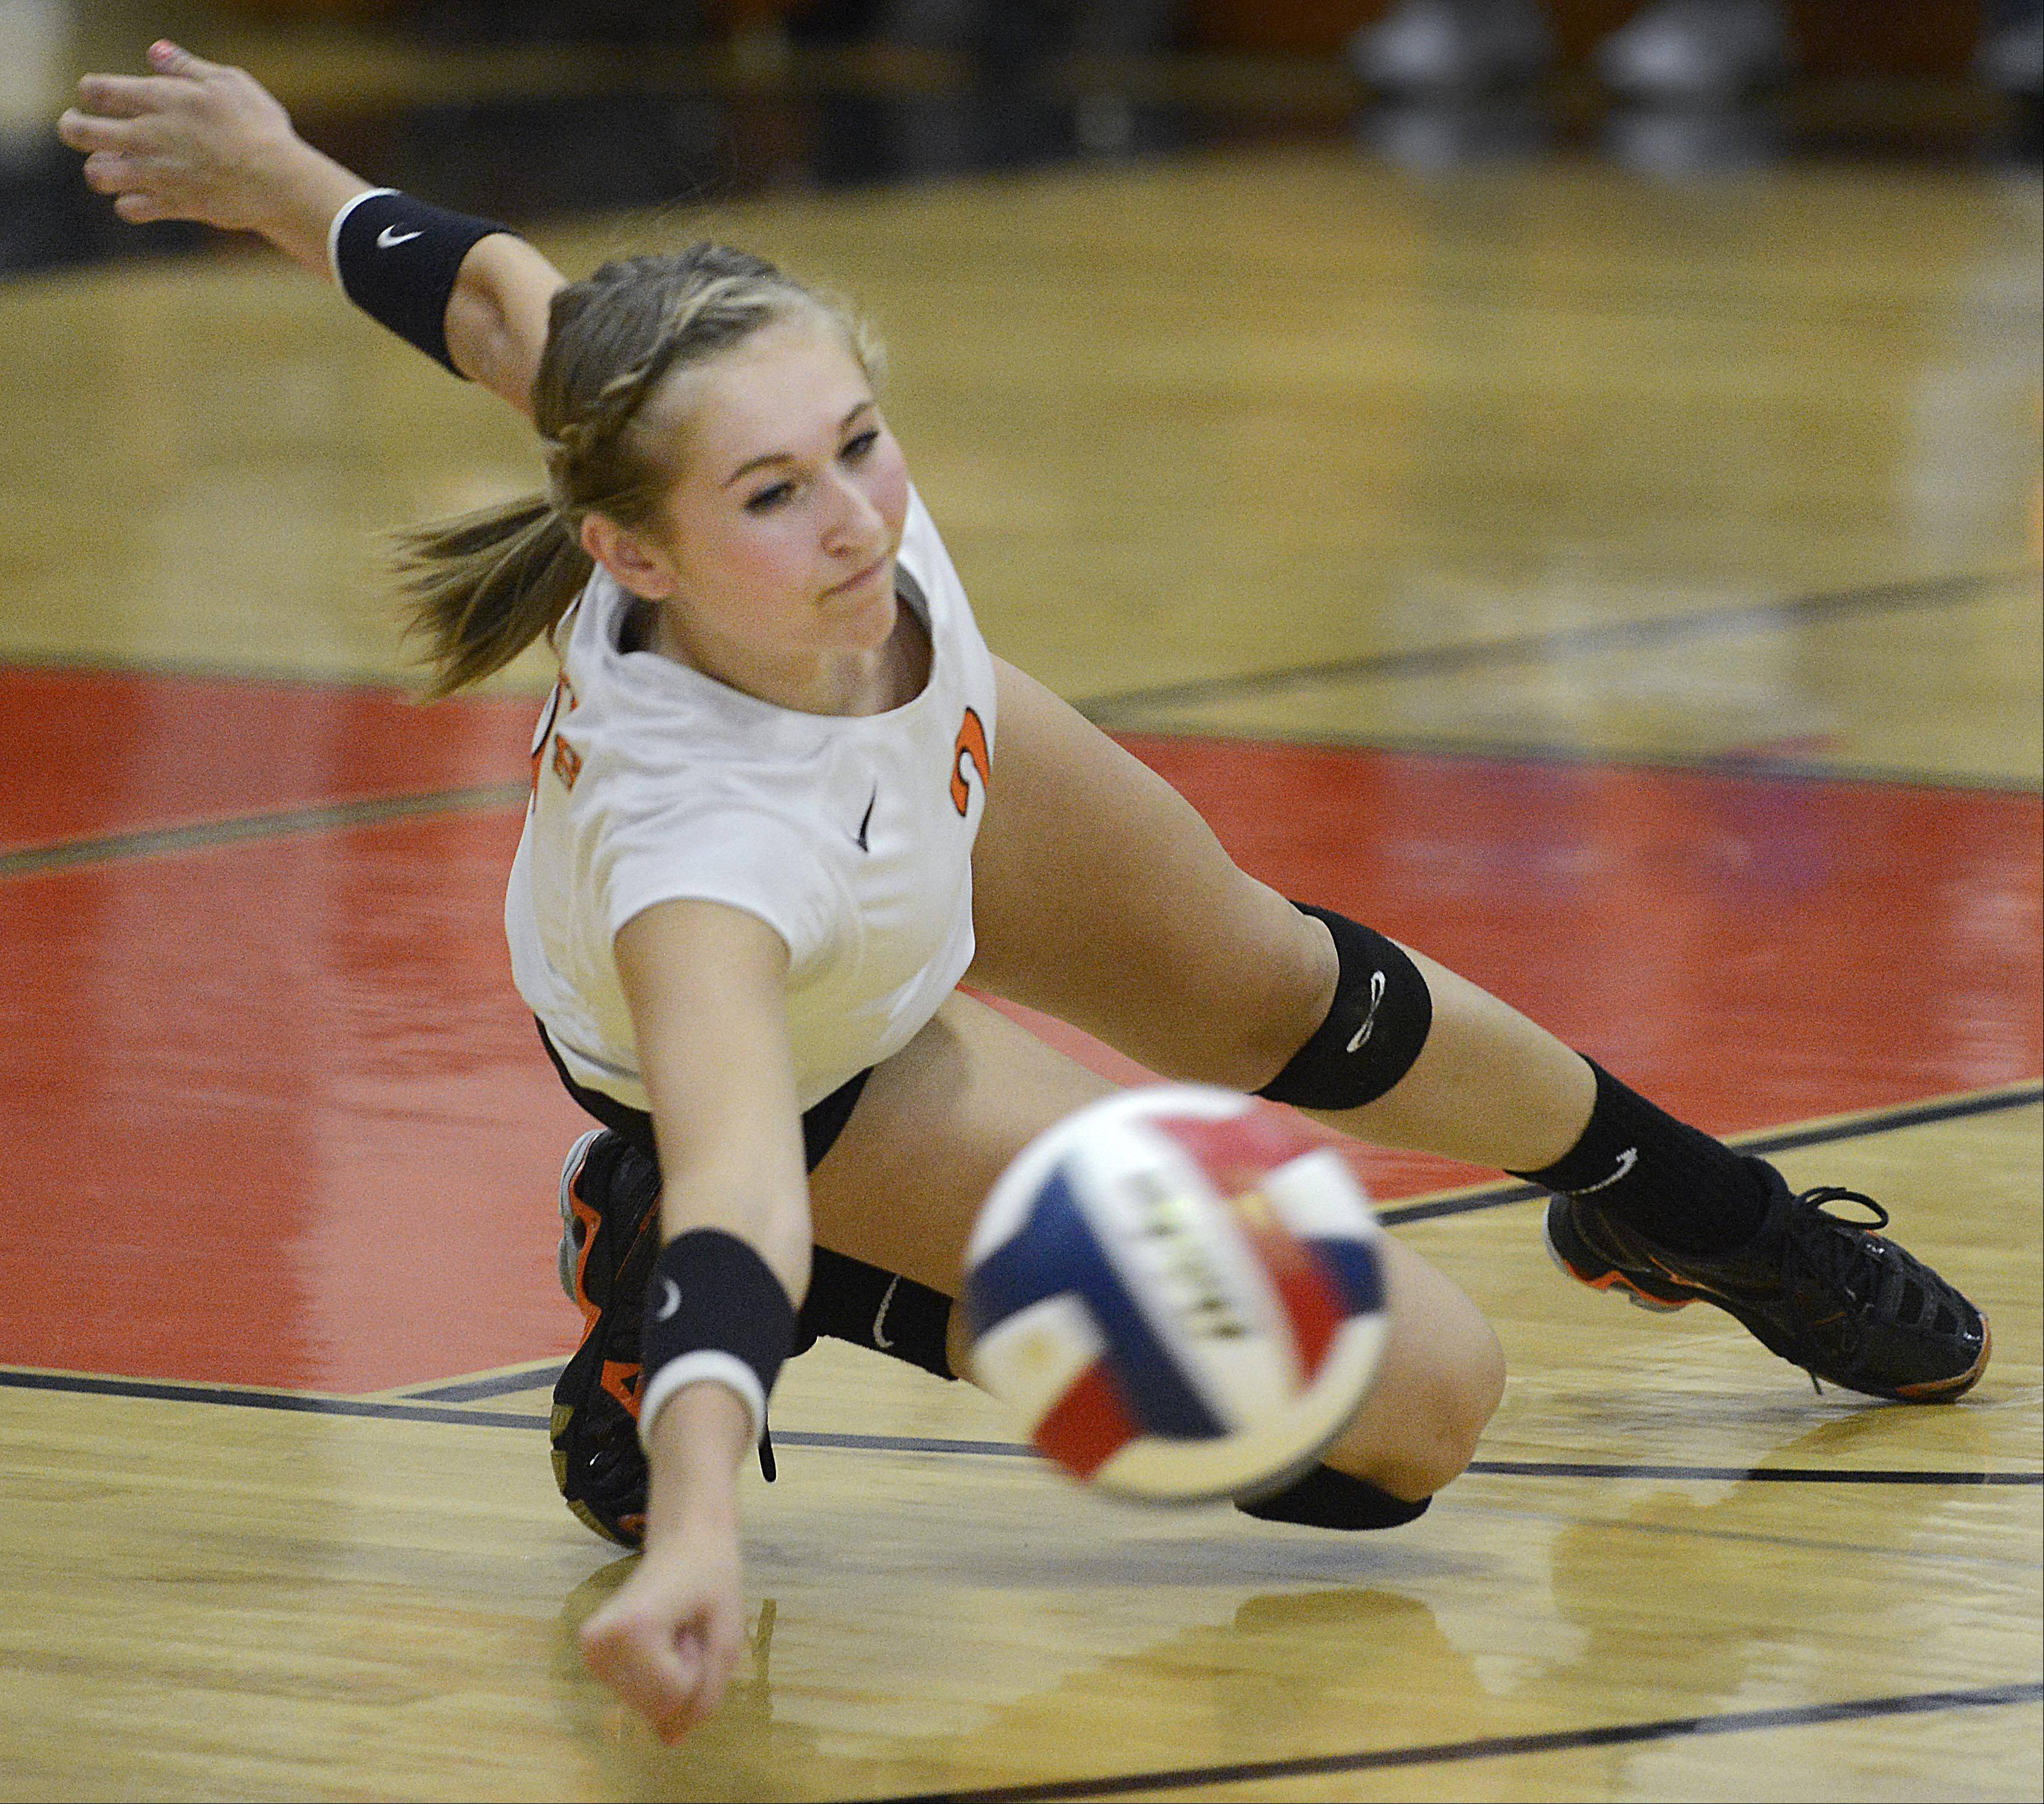 St. Charles East's Emily Vitel falls sideways to reach a hit by Geneva Tuesday in St. Charles.